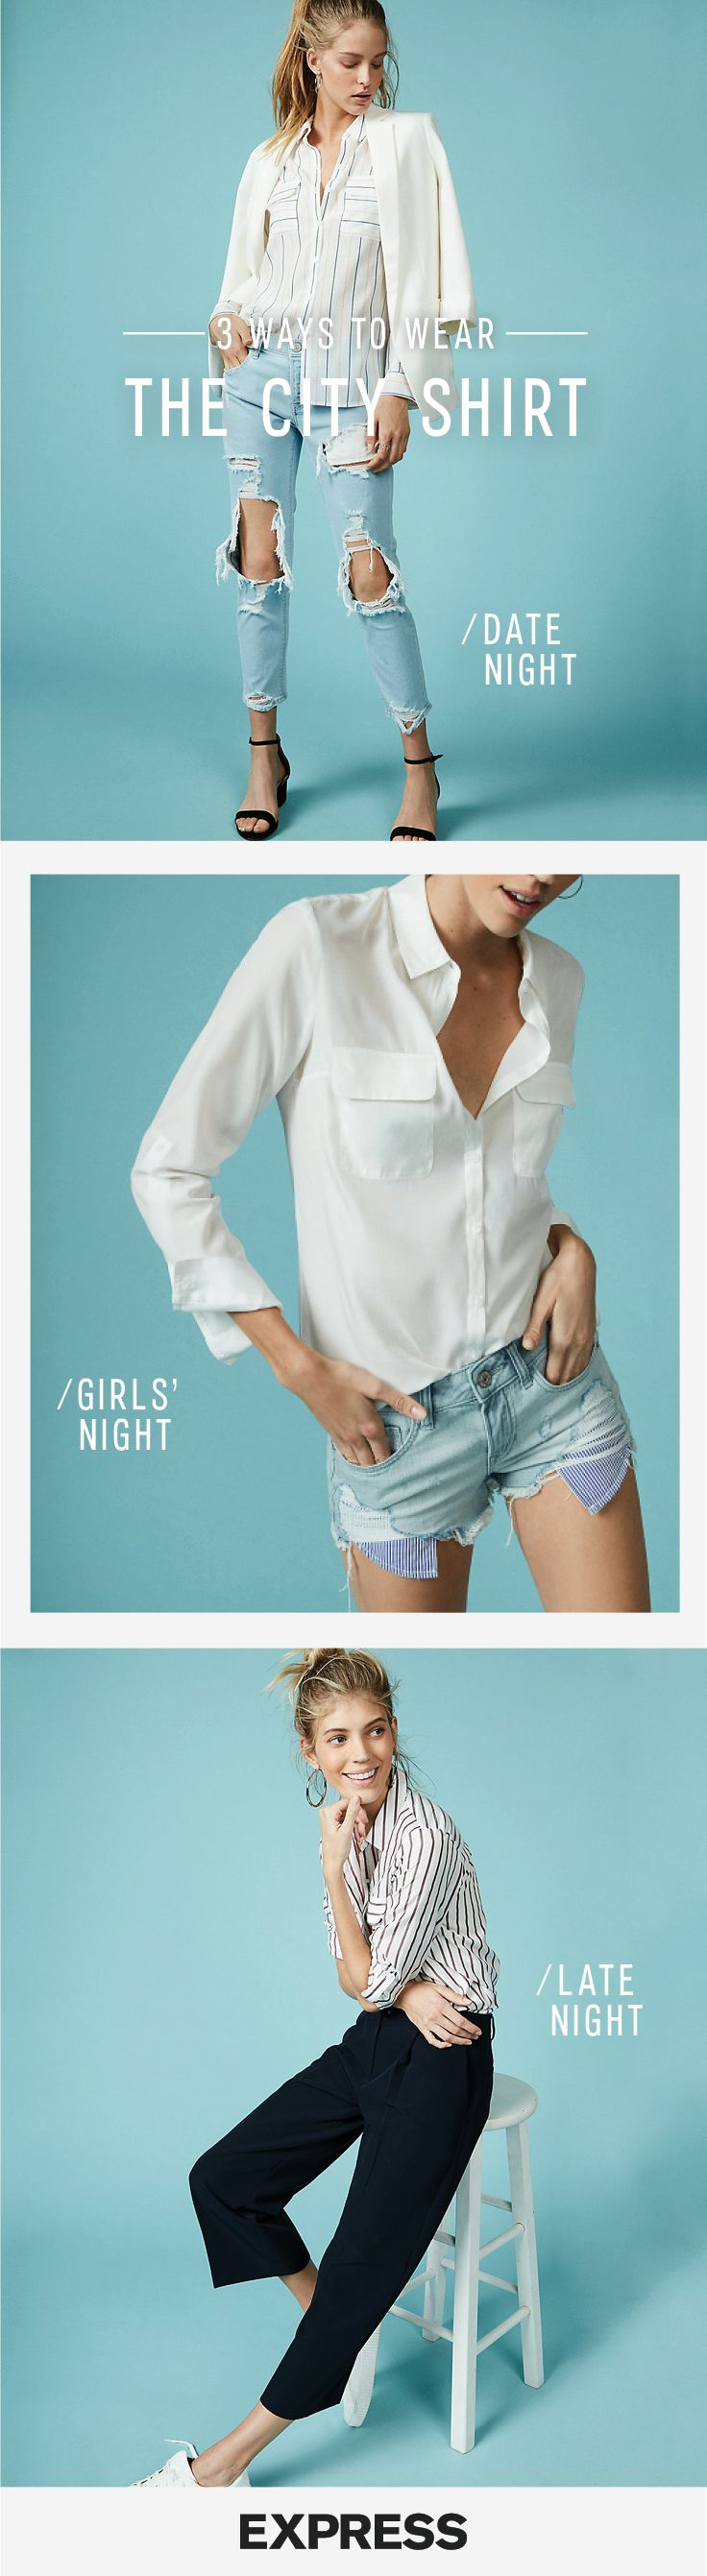 Meet The City Shirt by Express — our softest, most versatile shirt ever. Perfect for date night,  girl's night and late night!